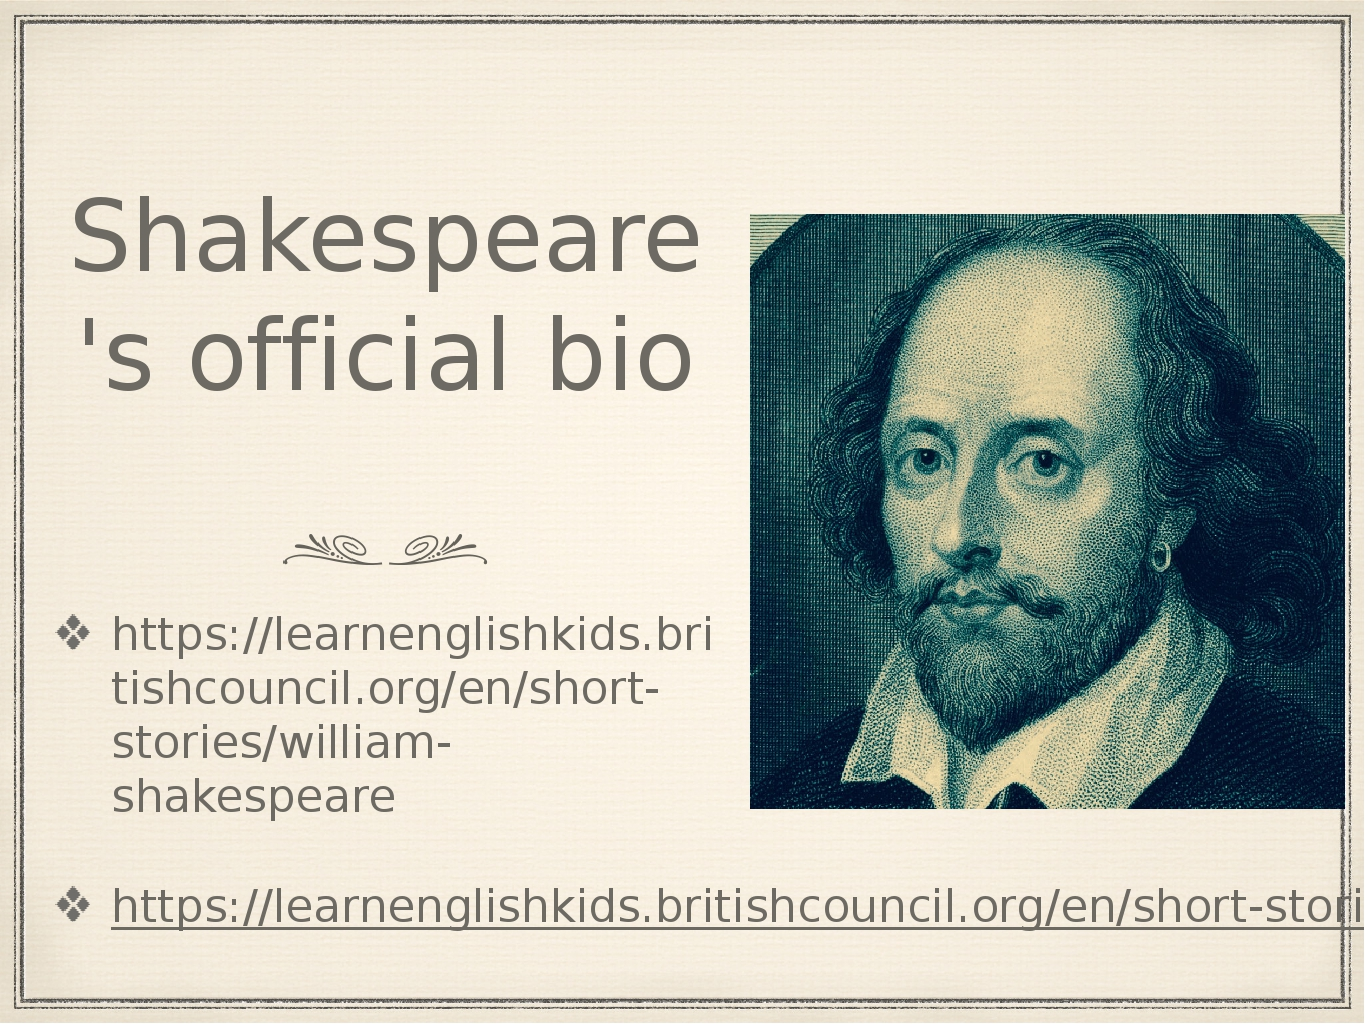 Shakespeare's official bio https://learnenglishkids.britishcouncil.org/en/sho...